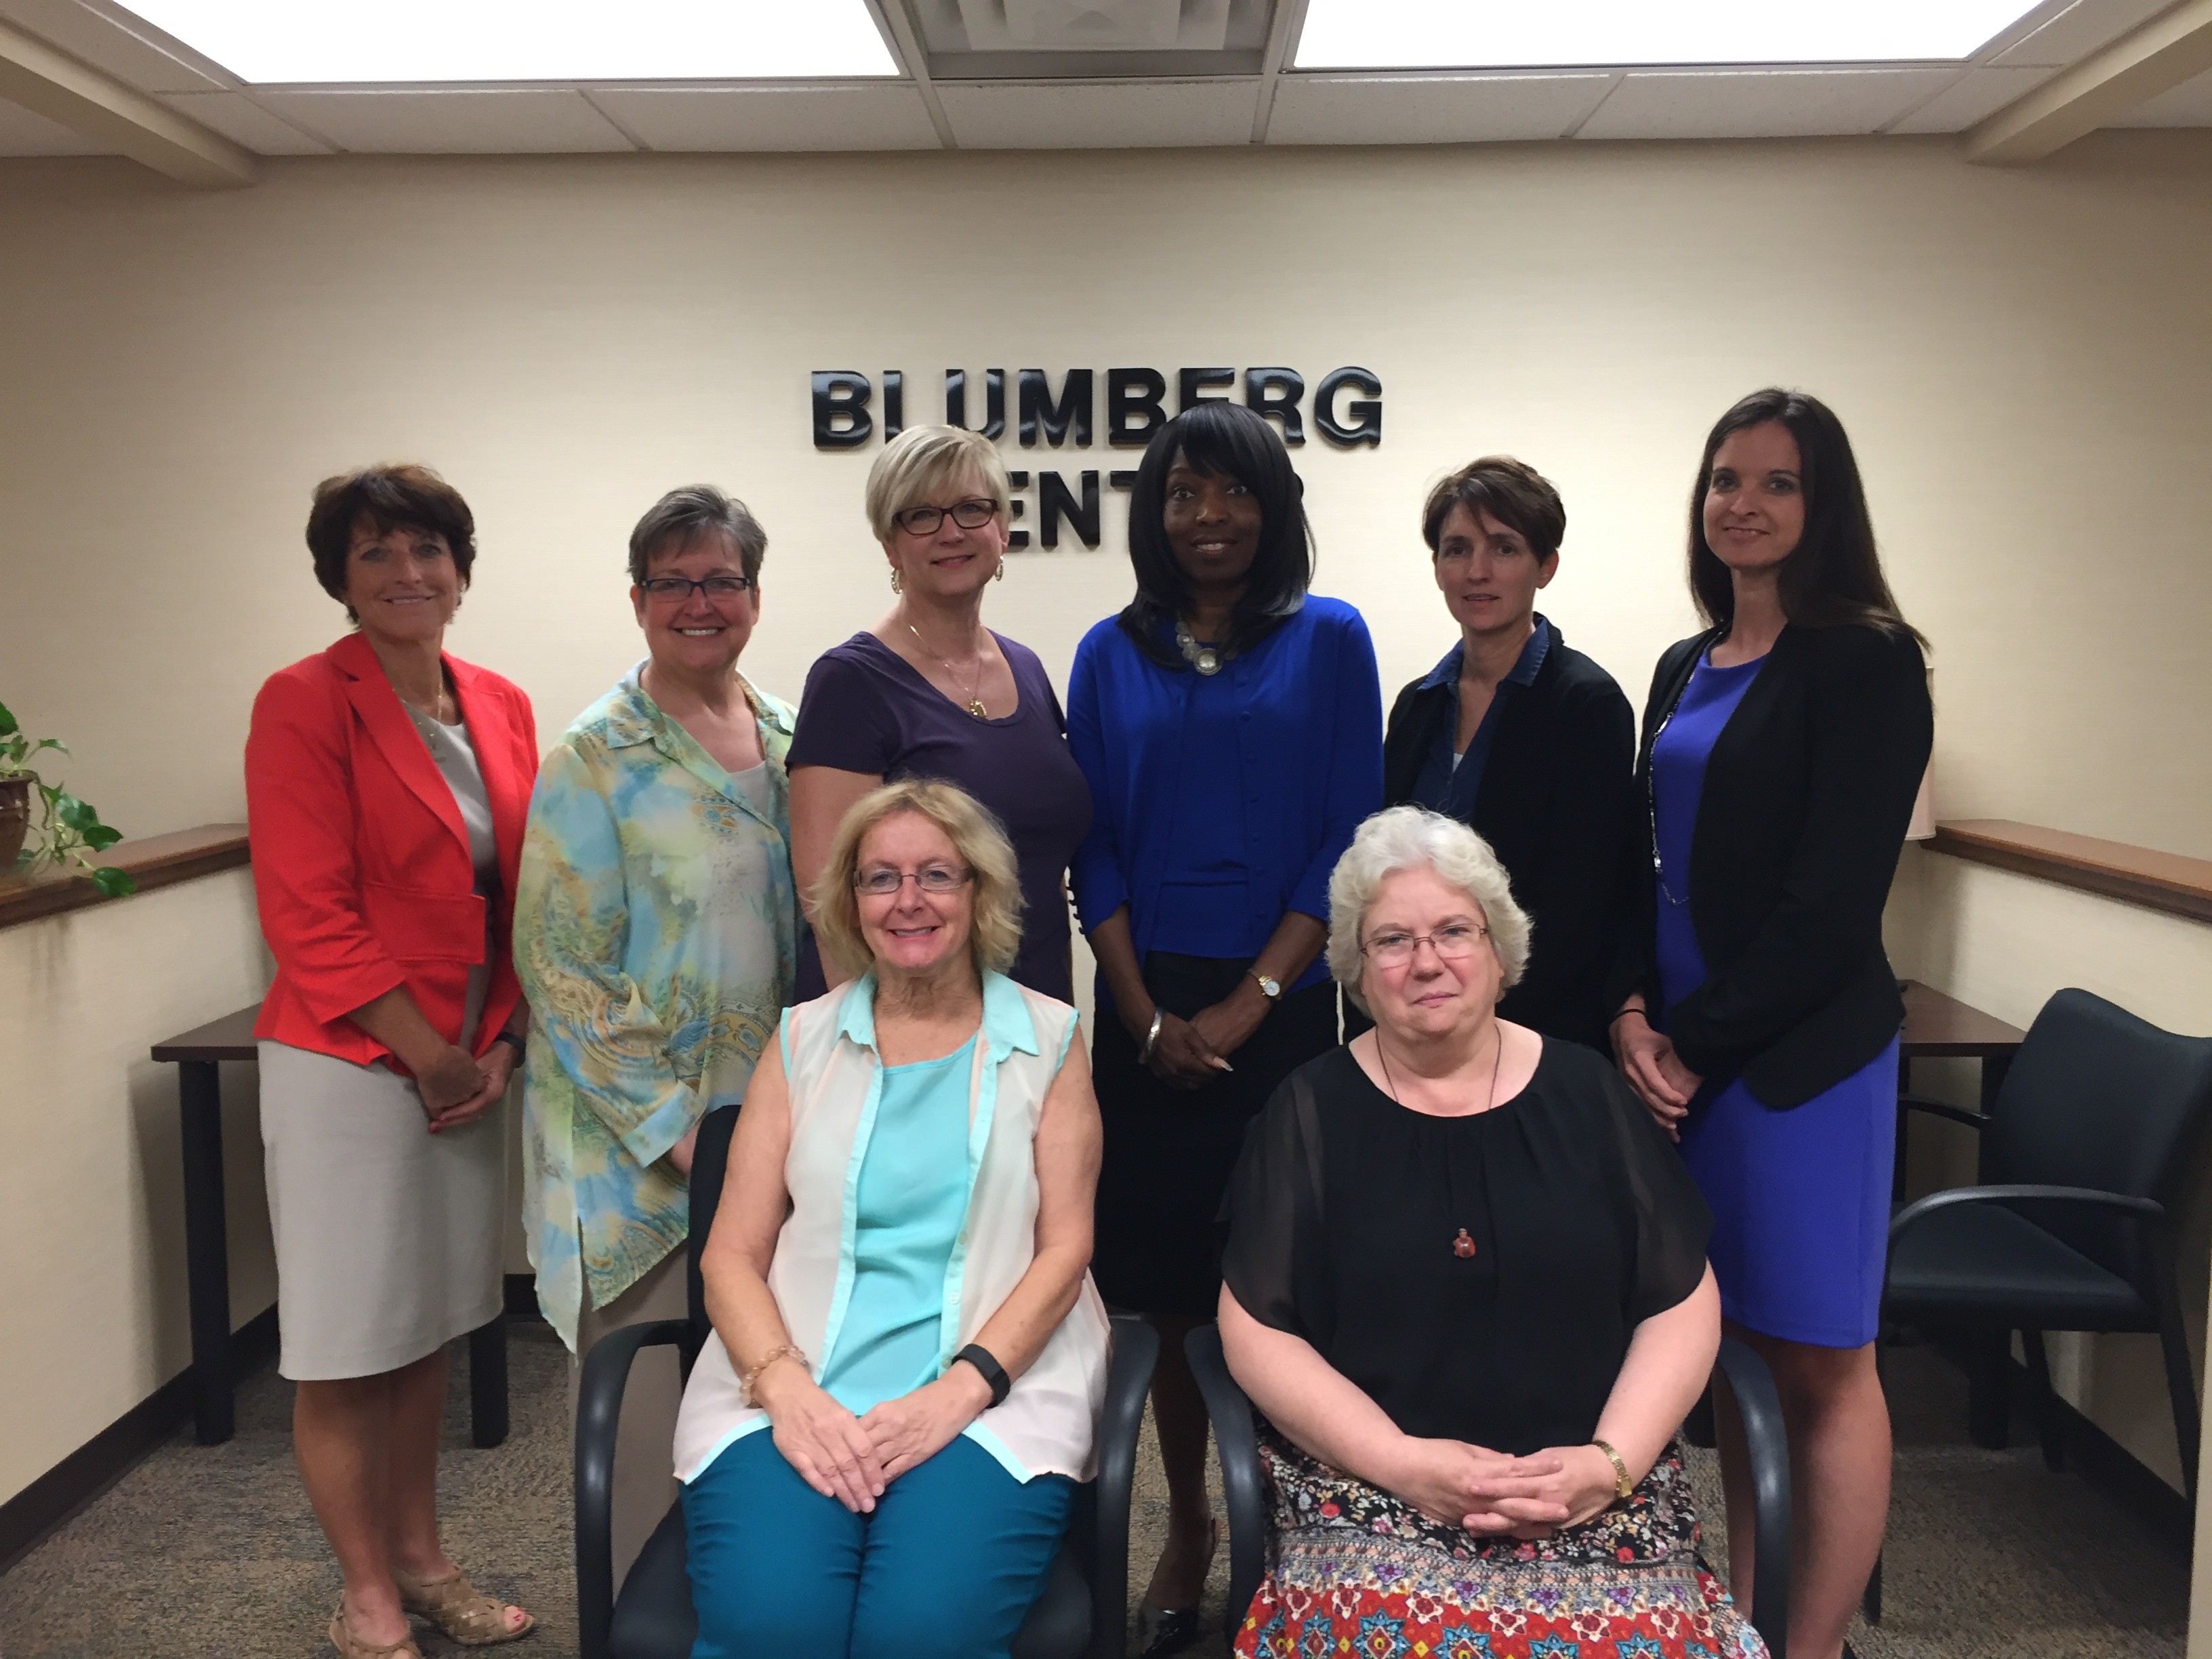 Blumberg Steering Council 2016